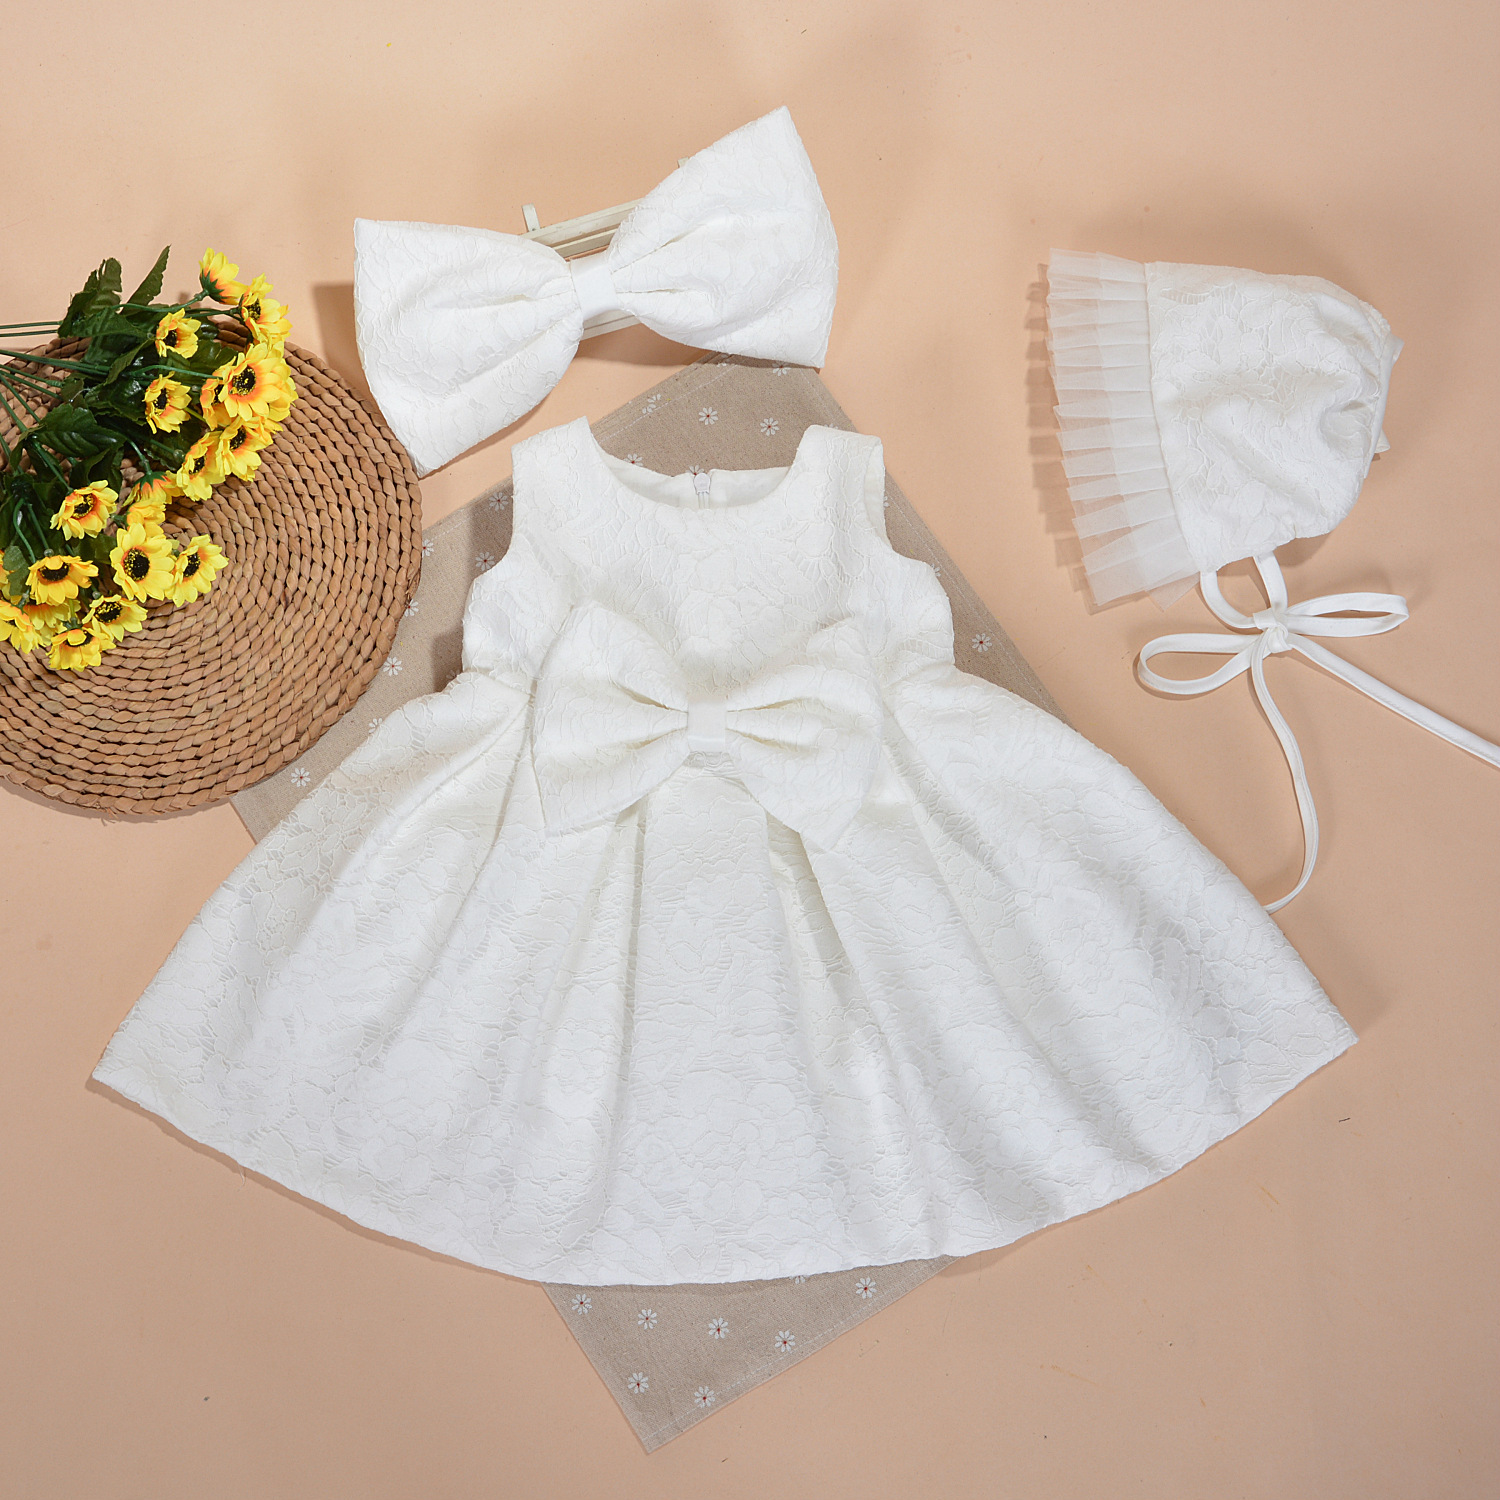 Baby Girl Baptism Dress With Hat Bow Gown Ball White Formal Baptism